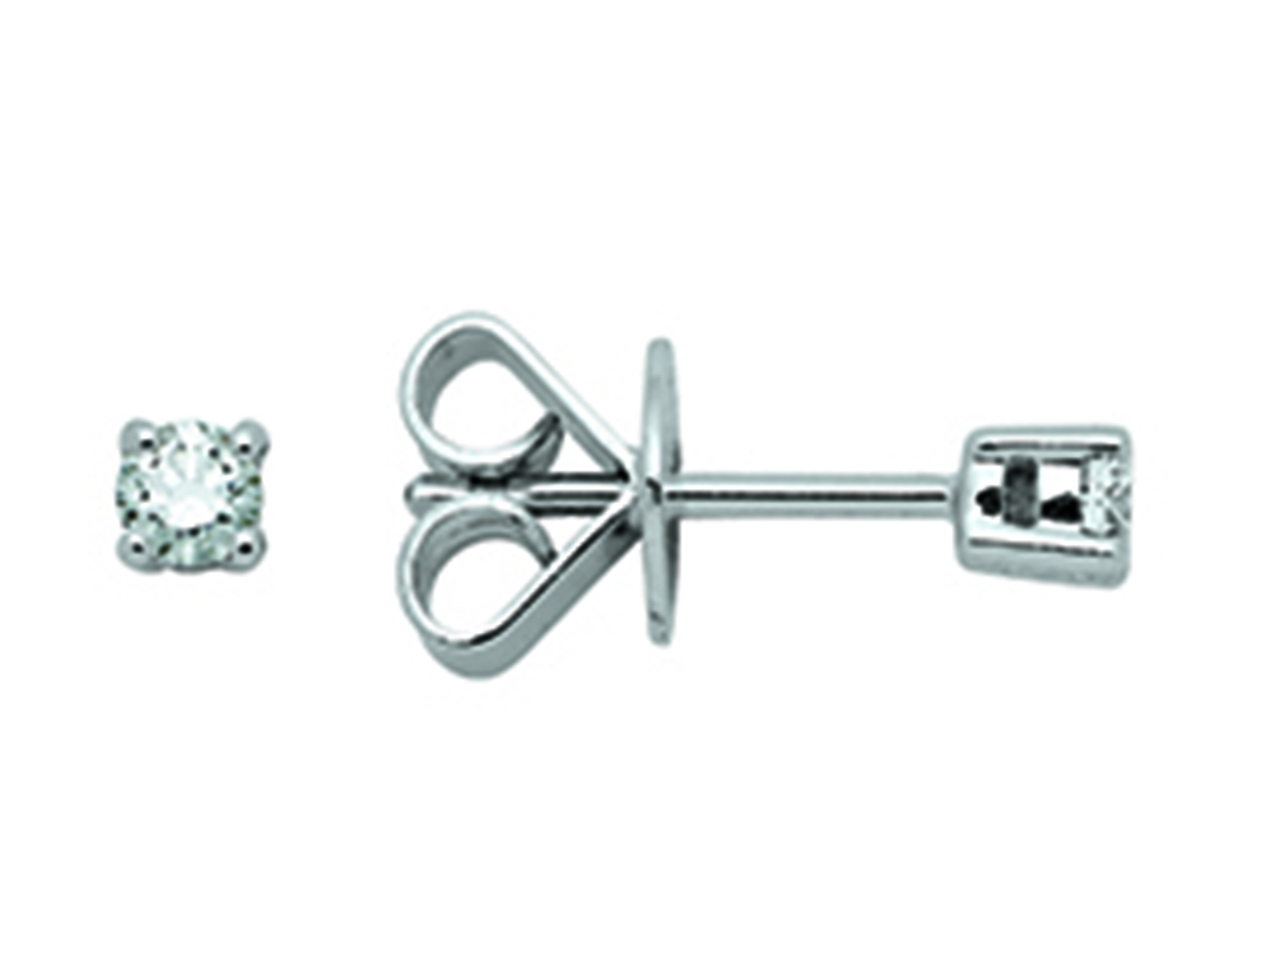 Boucles d'oreilles Or gris 18k, diamants 4 griffes 0,18ct